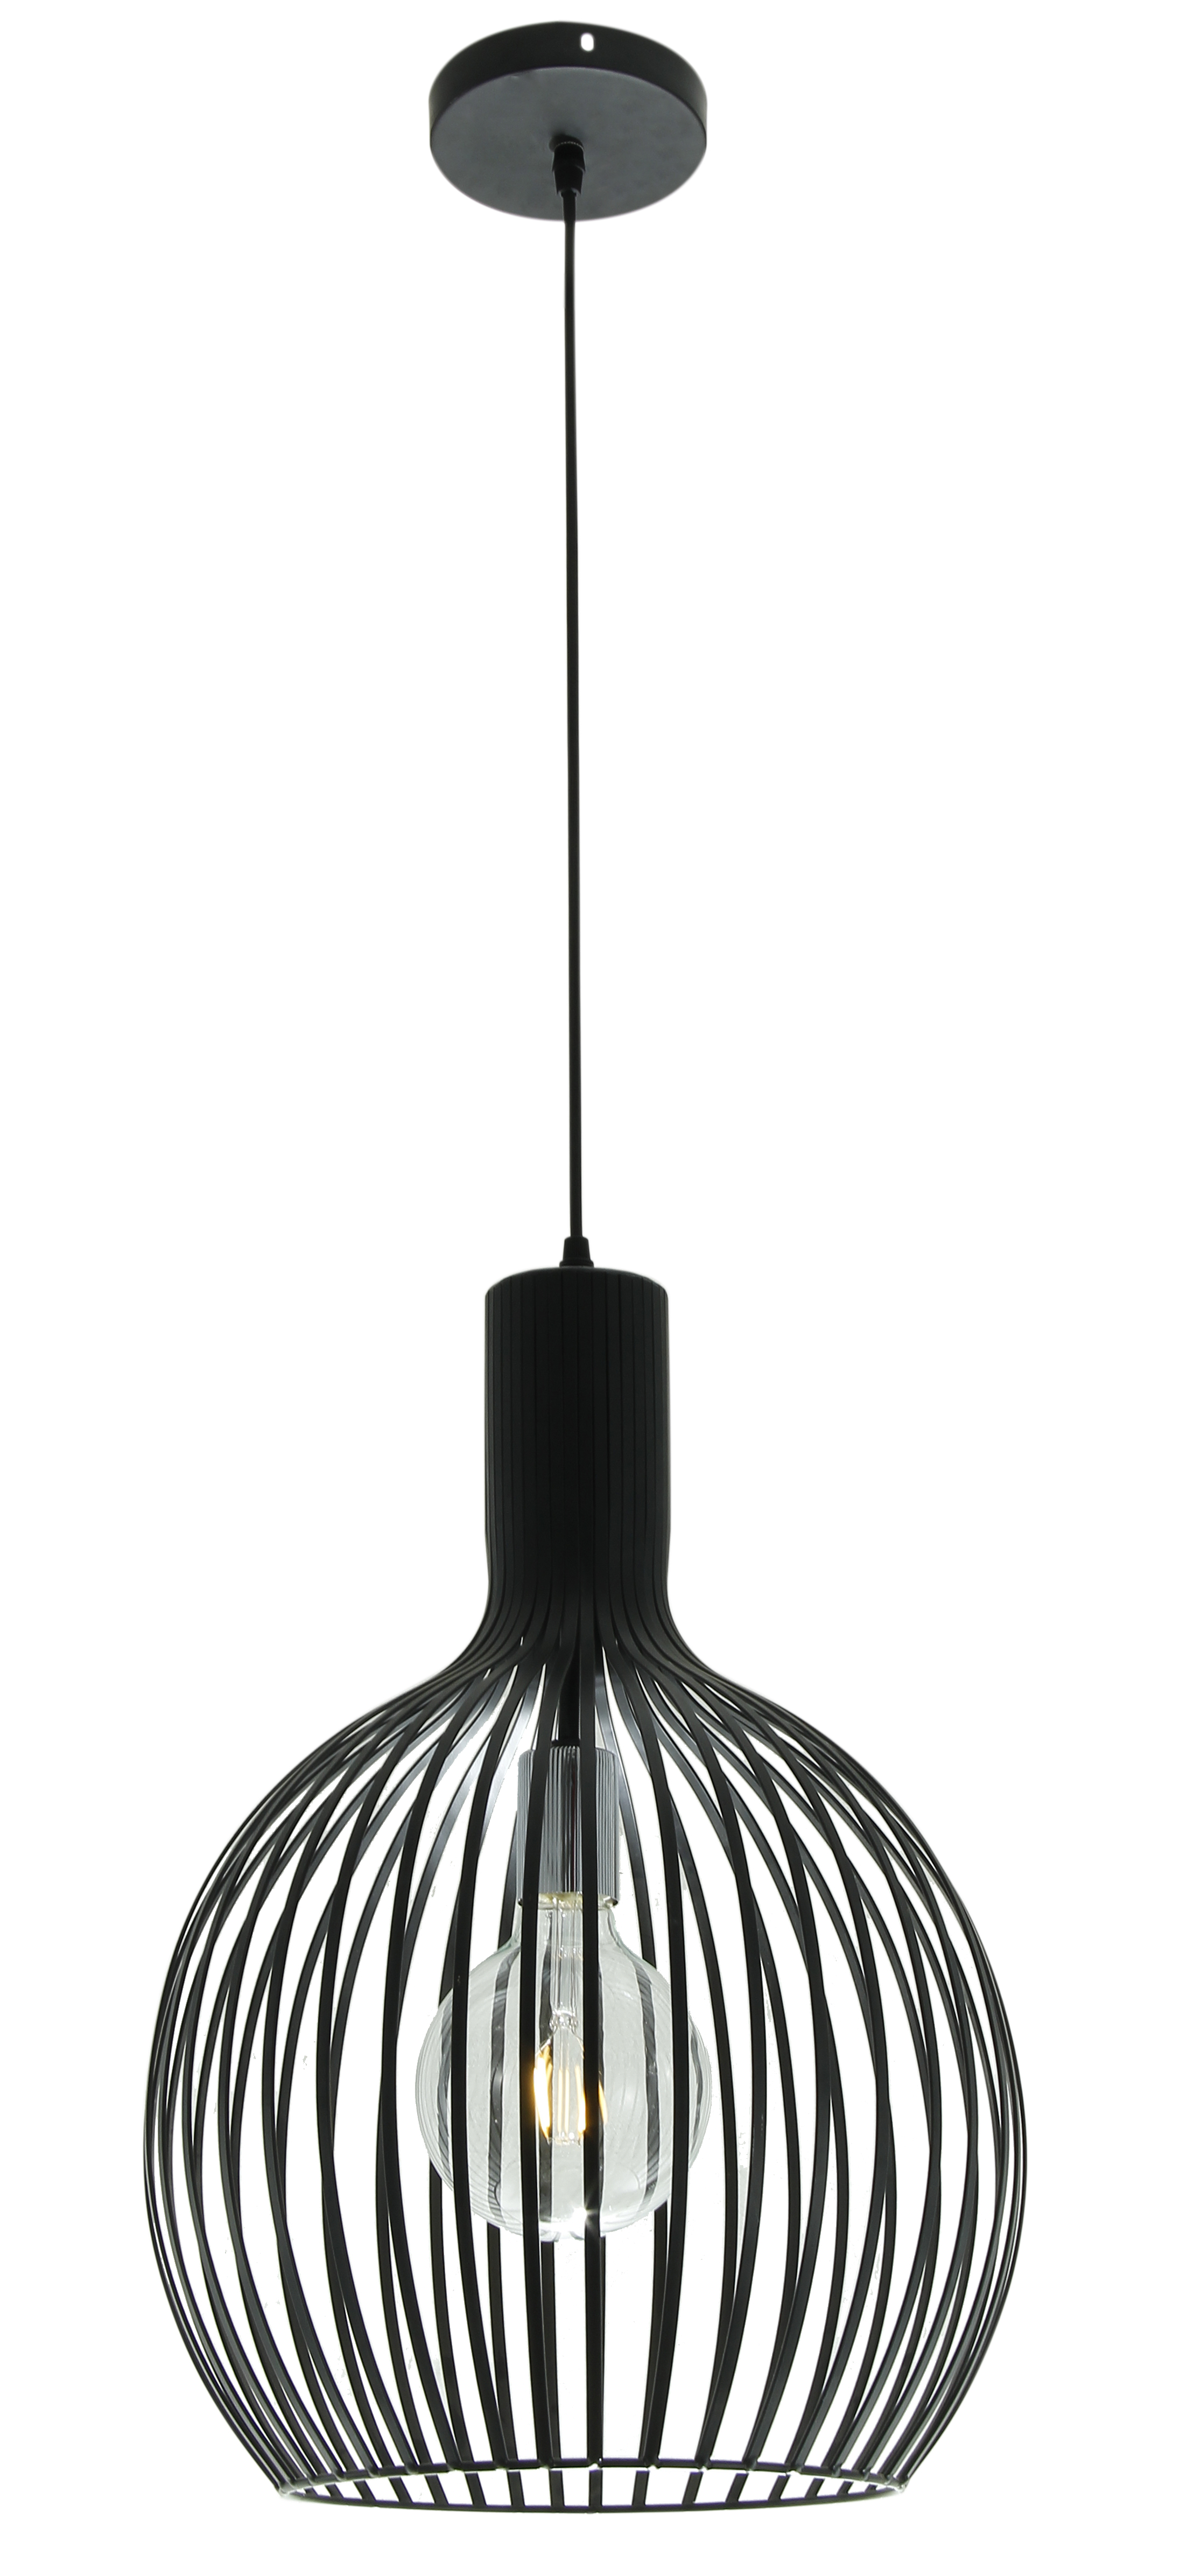 SUPERLIGHTS PENDANT LIGHT 1xE27